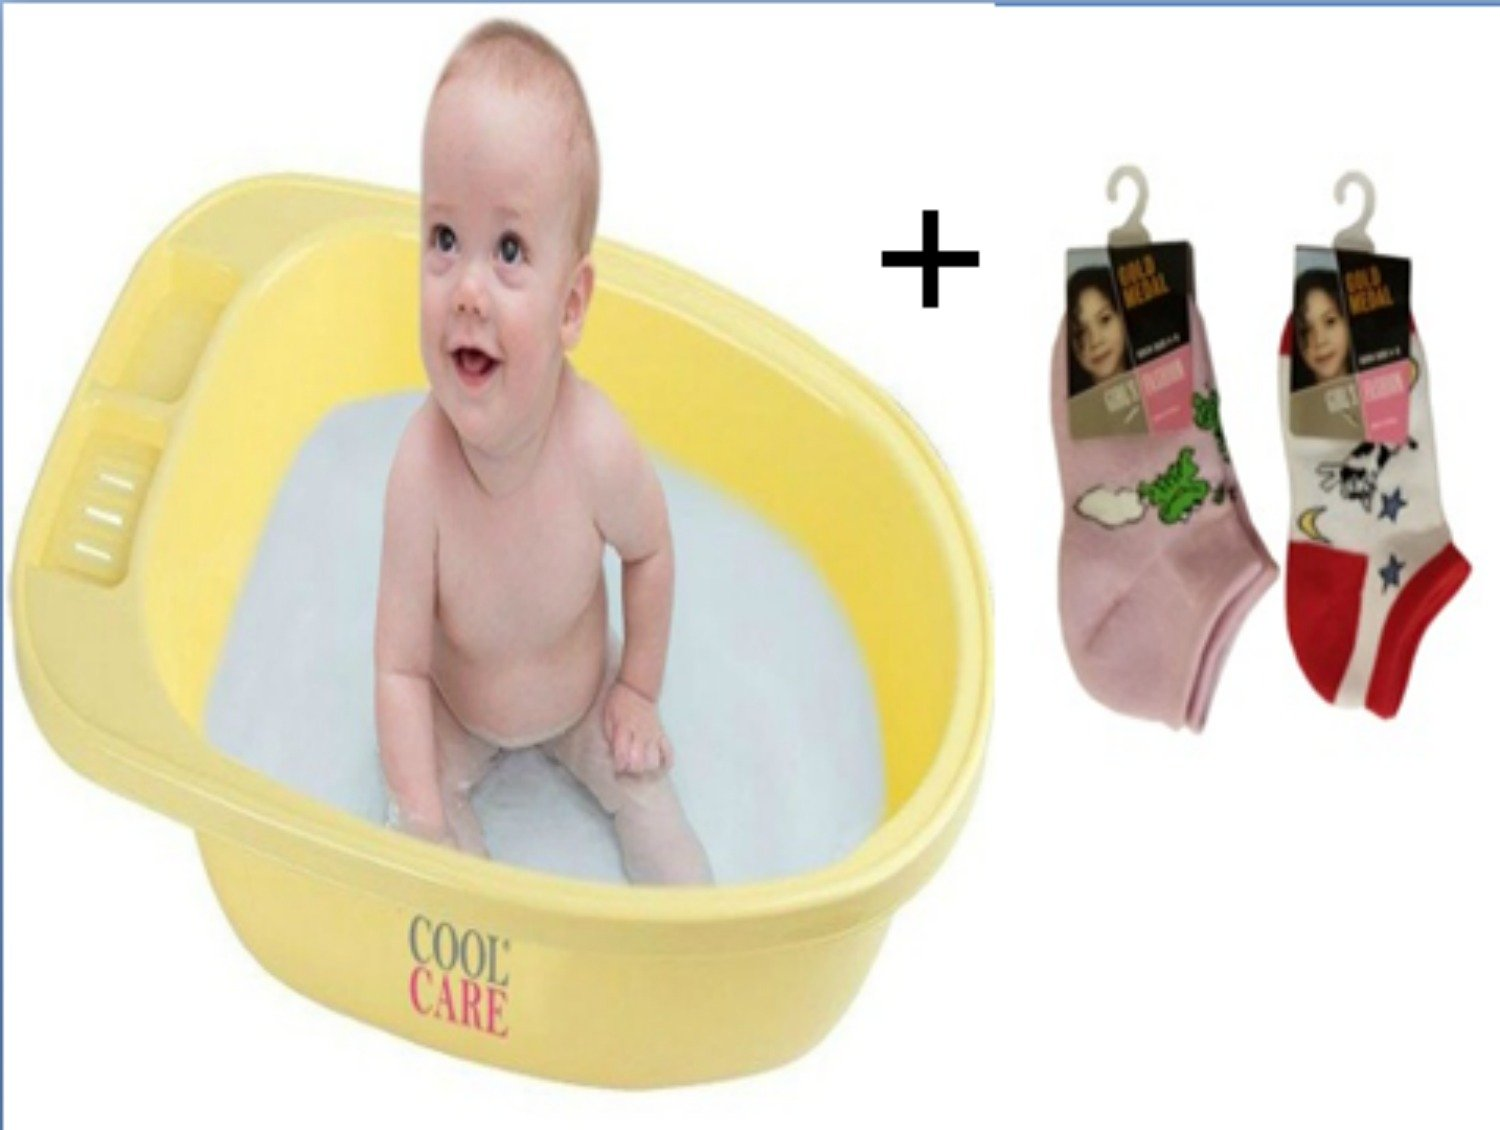 Amazon.com: Cool Care Baby Bath Tub for Sitters, 100% BPA Free ...